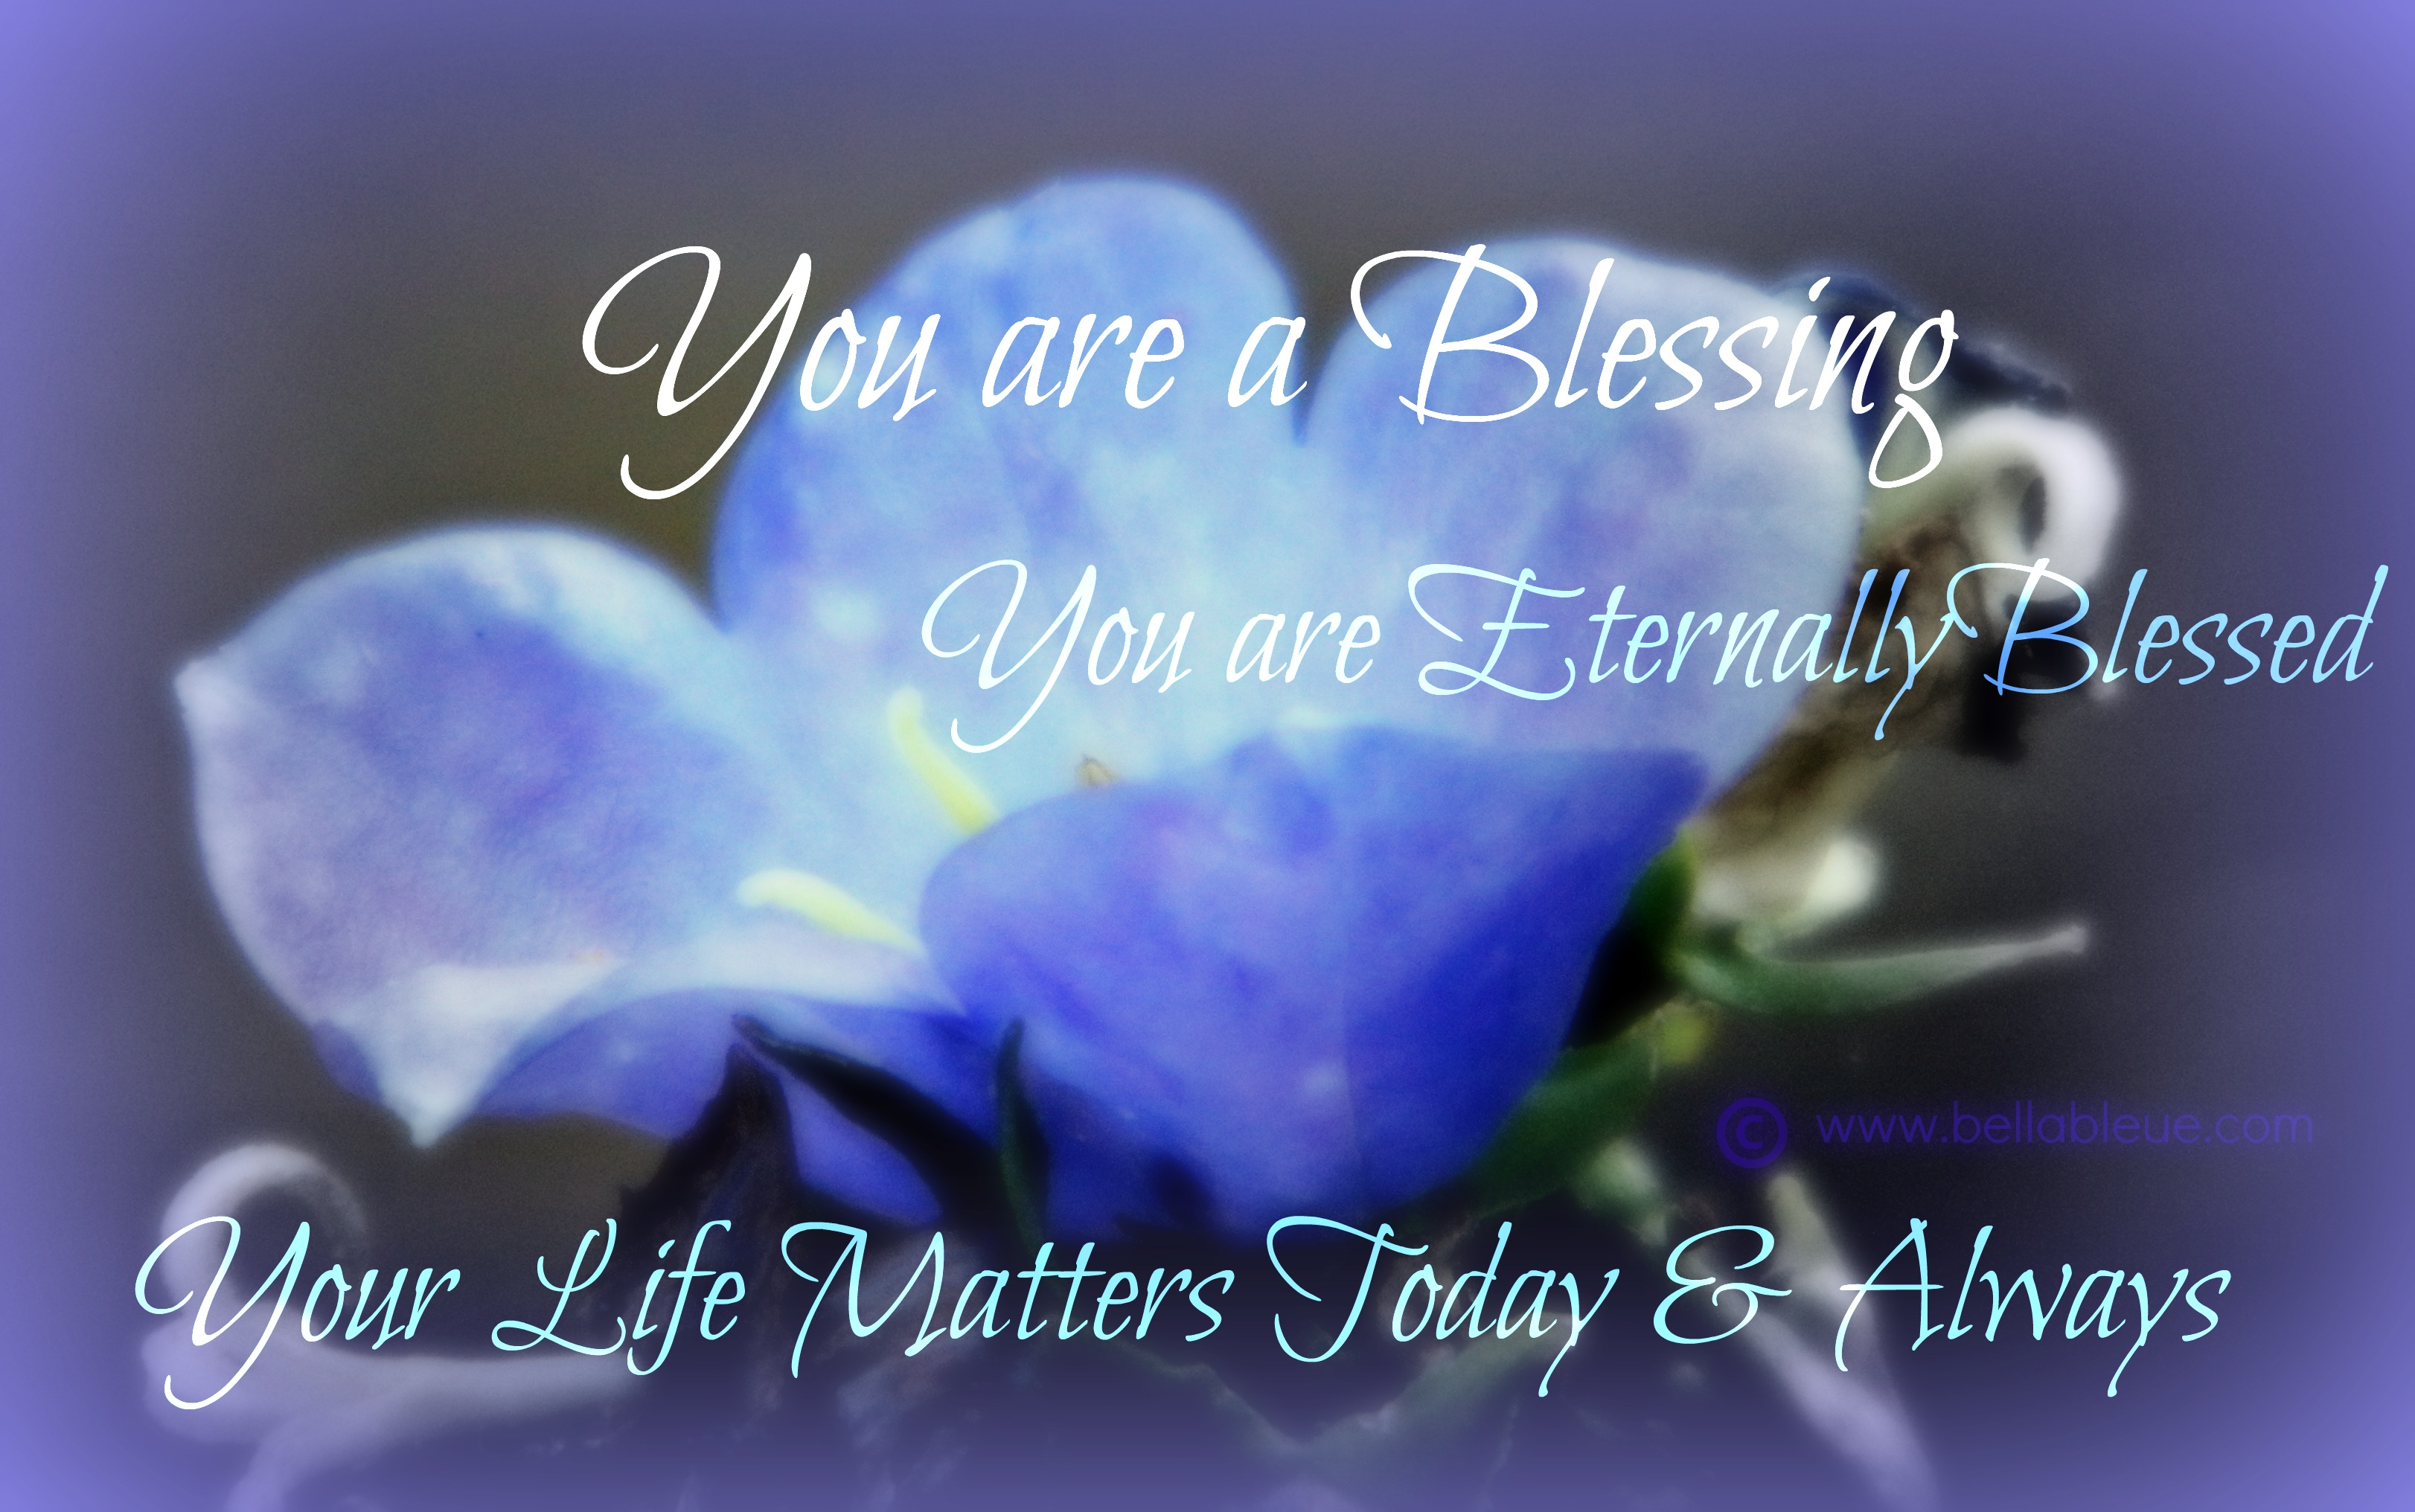 You Are A Blessing Quotes You Are A Blessing Quotes  Bella Bleue Healing™